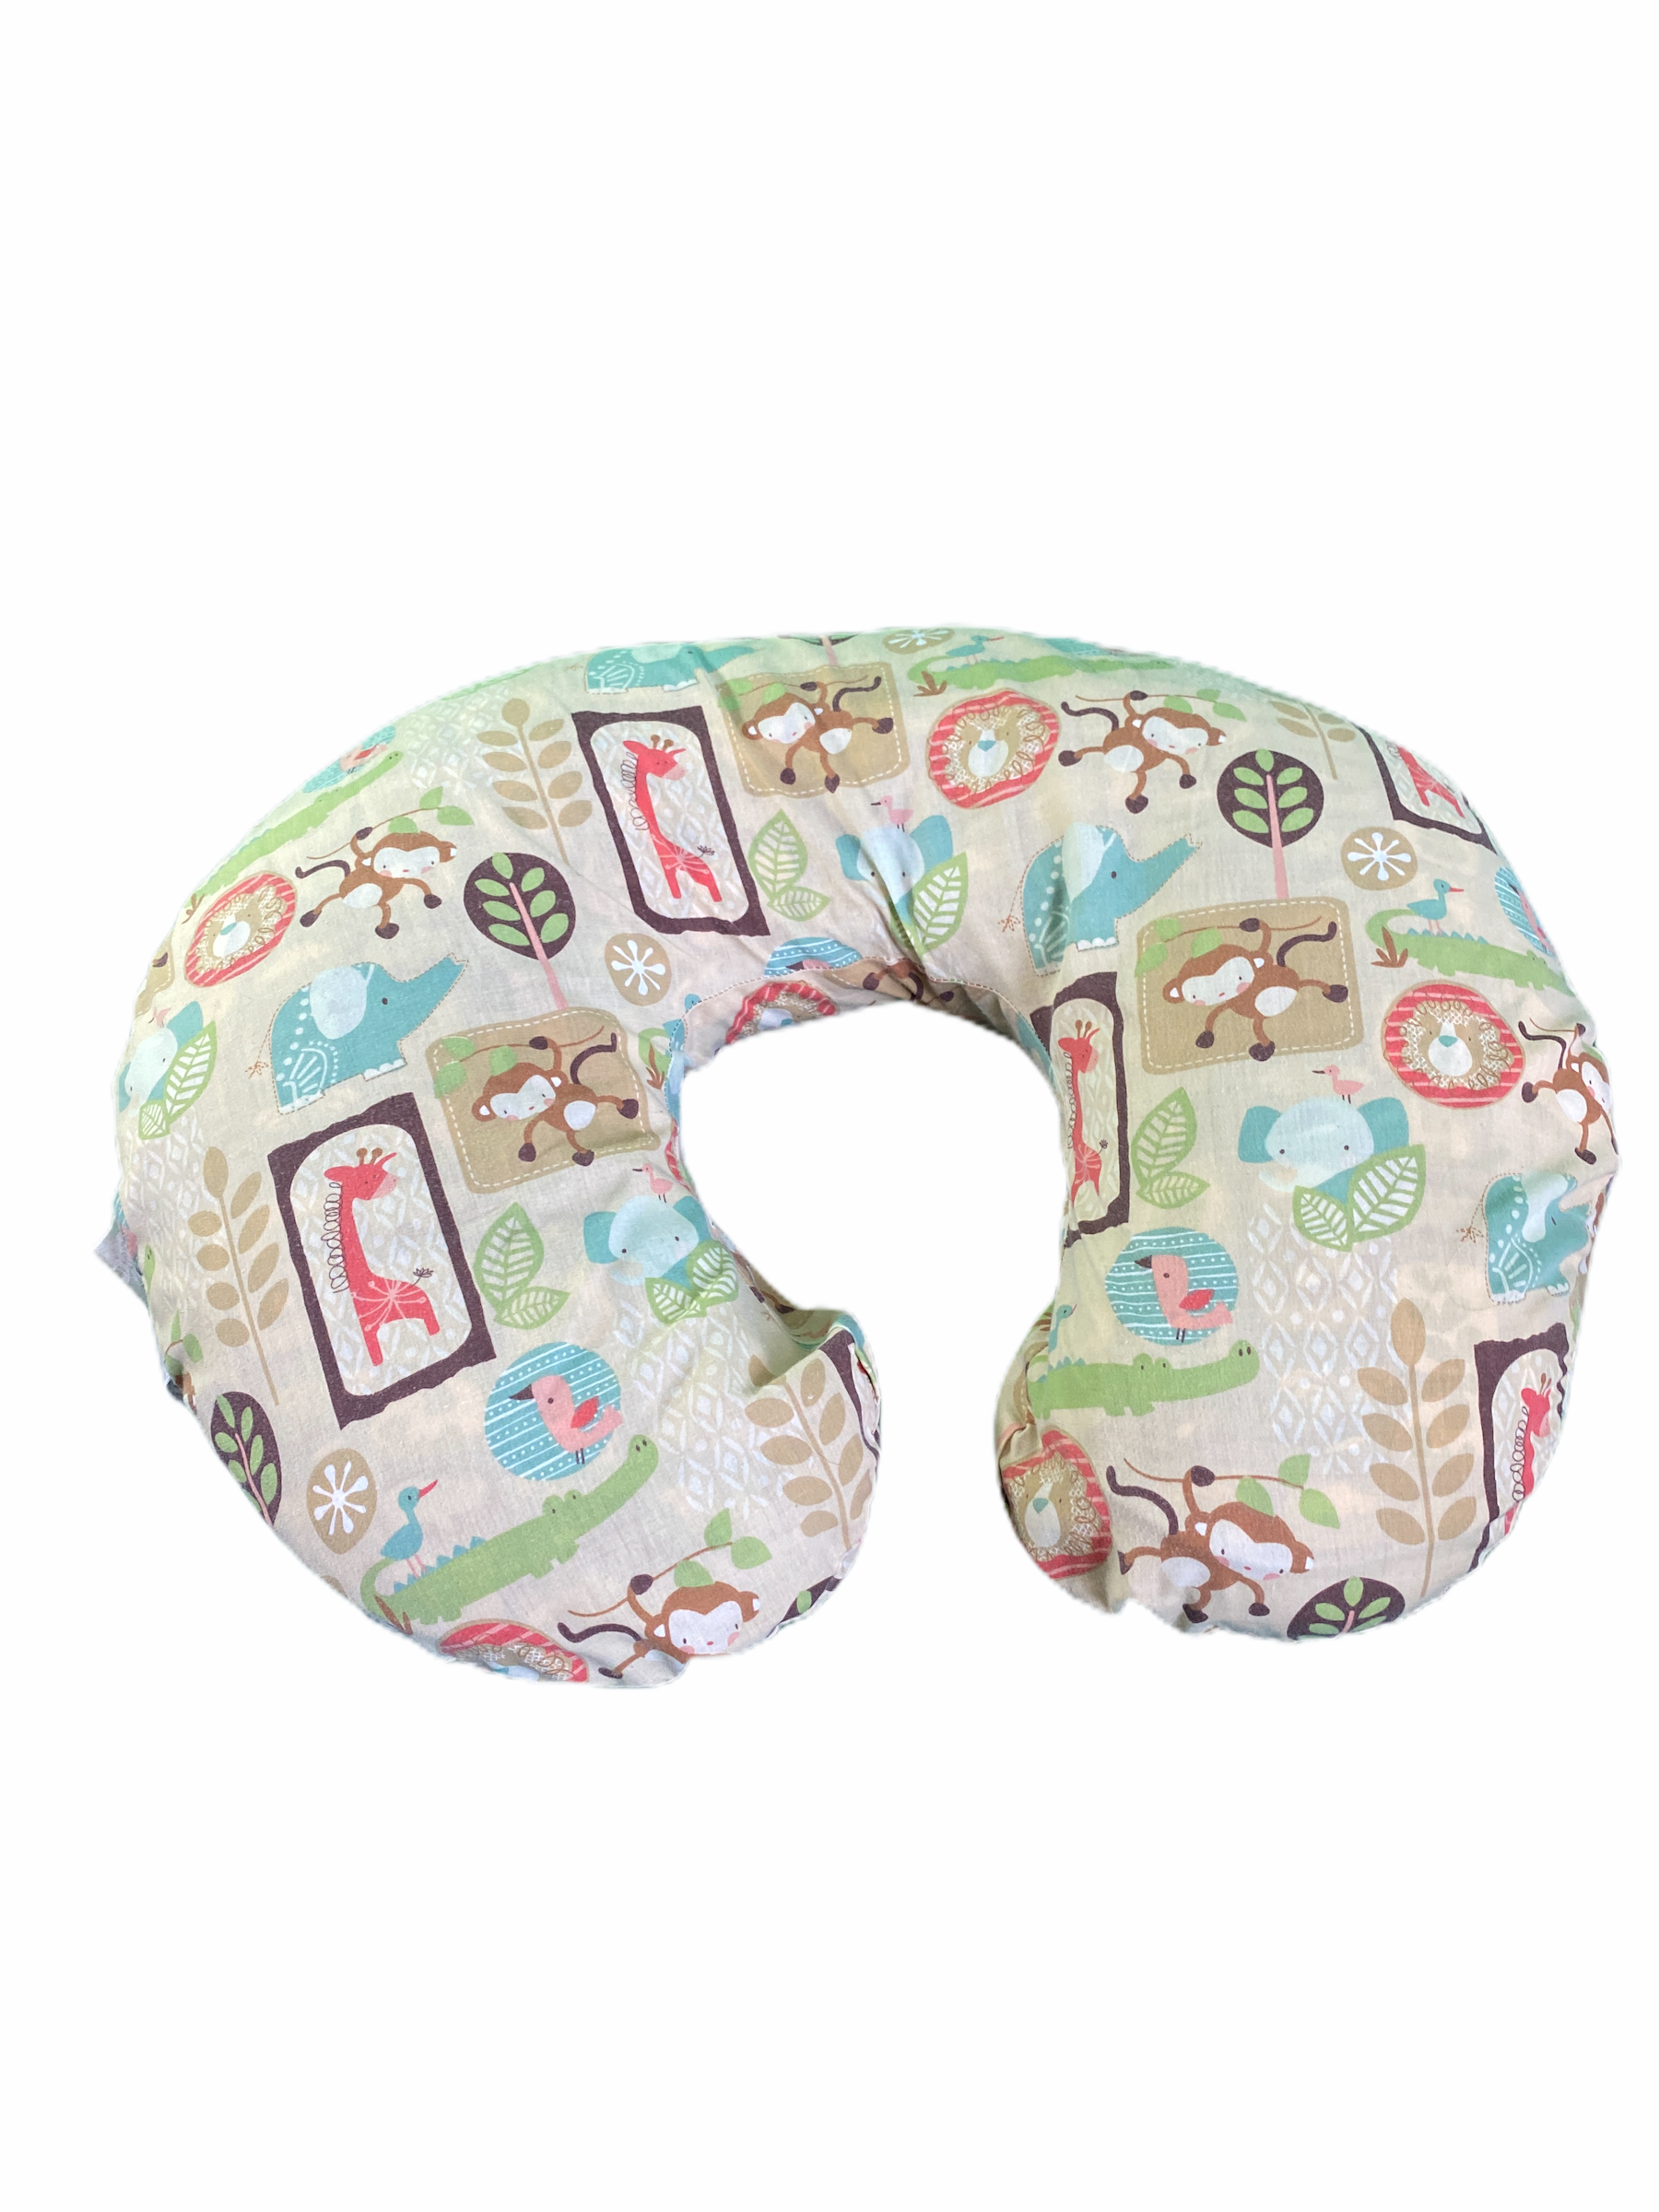 Boppy Nursing Support Pillow Safari Print